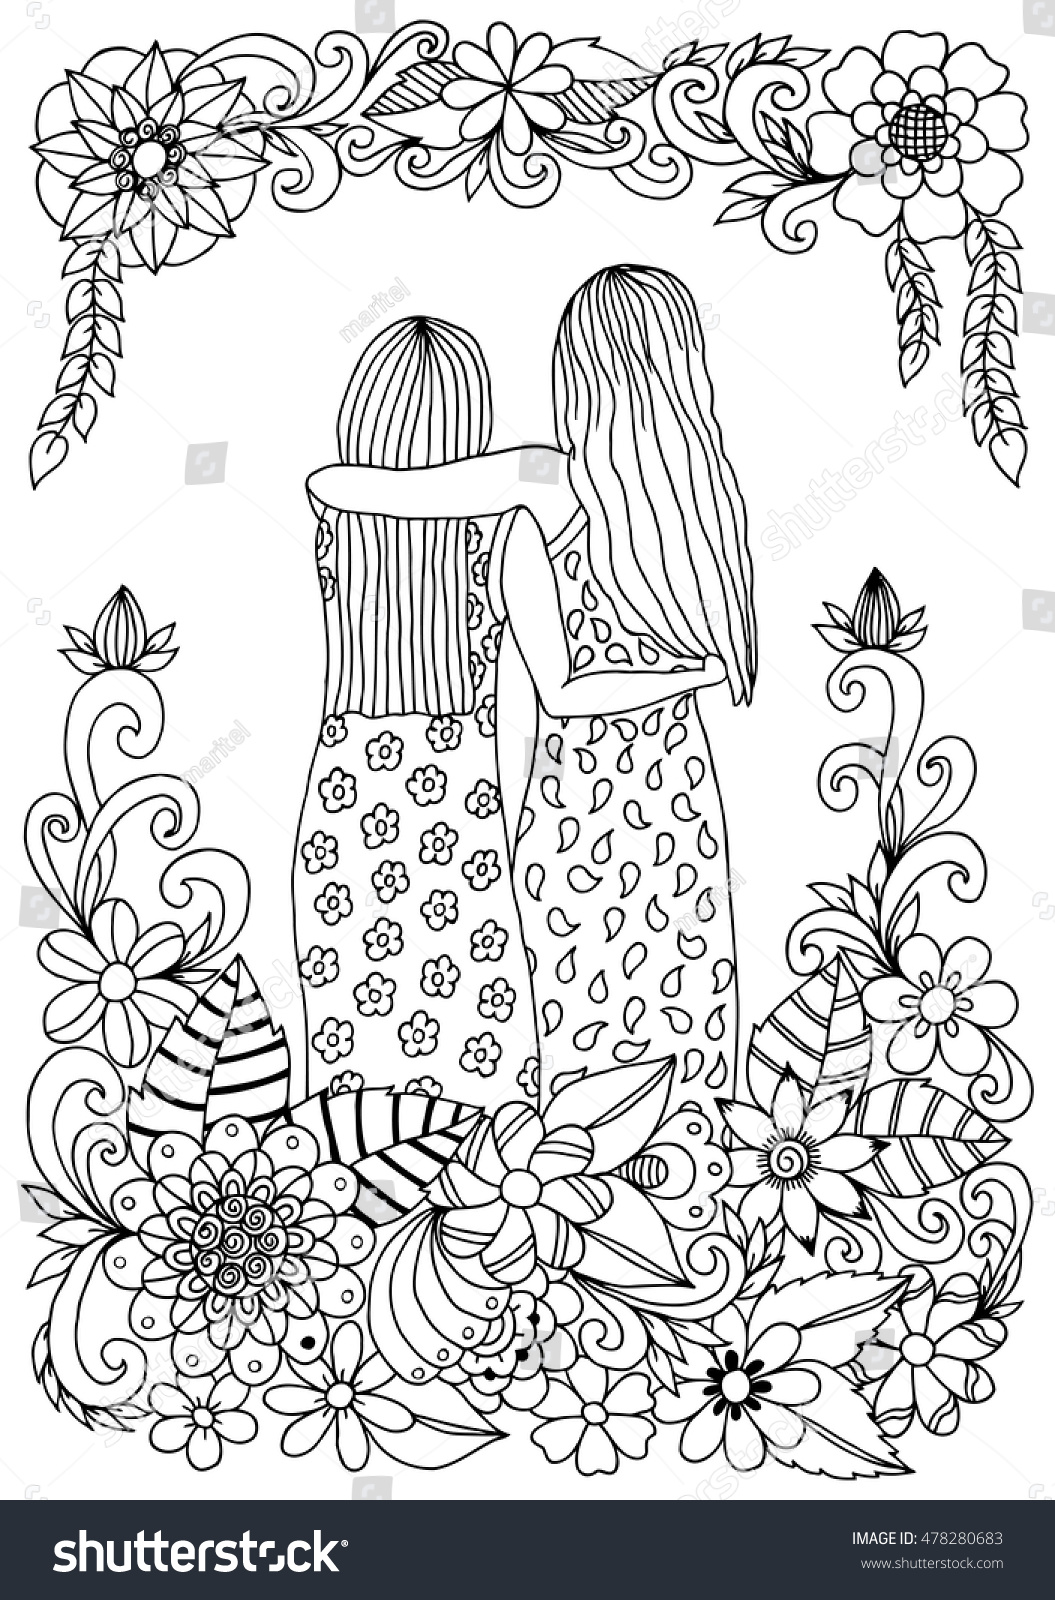 Vector Illustration Zen Tangle Two Sisters Stock Vector (Royalty ...